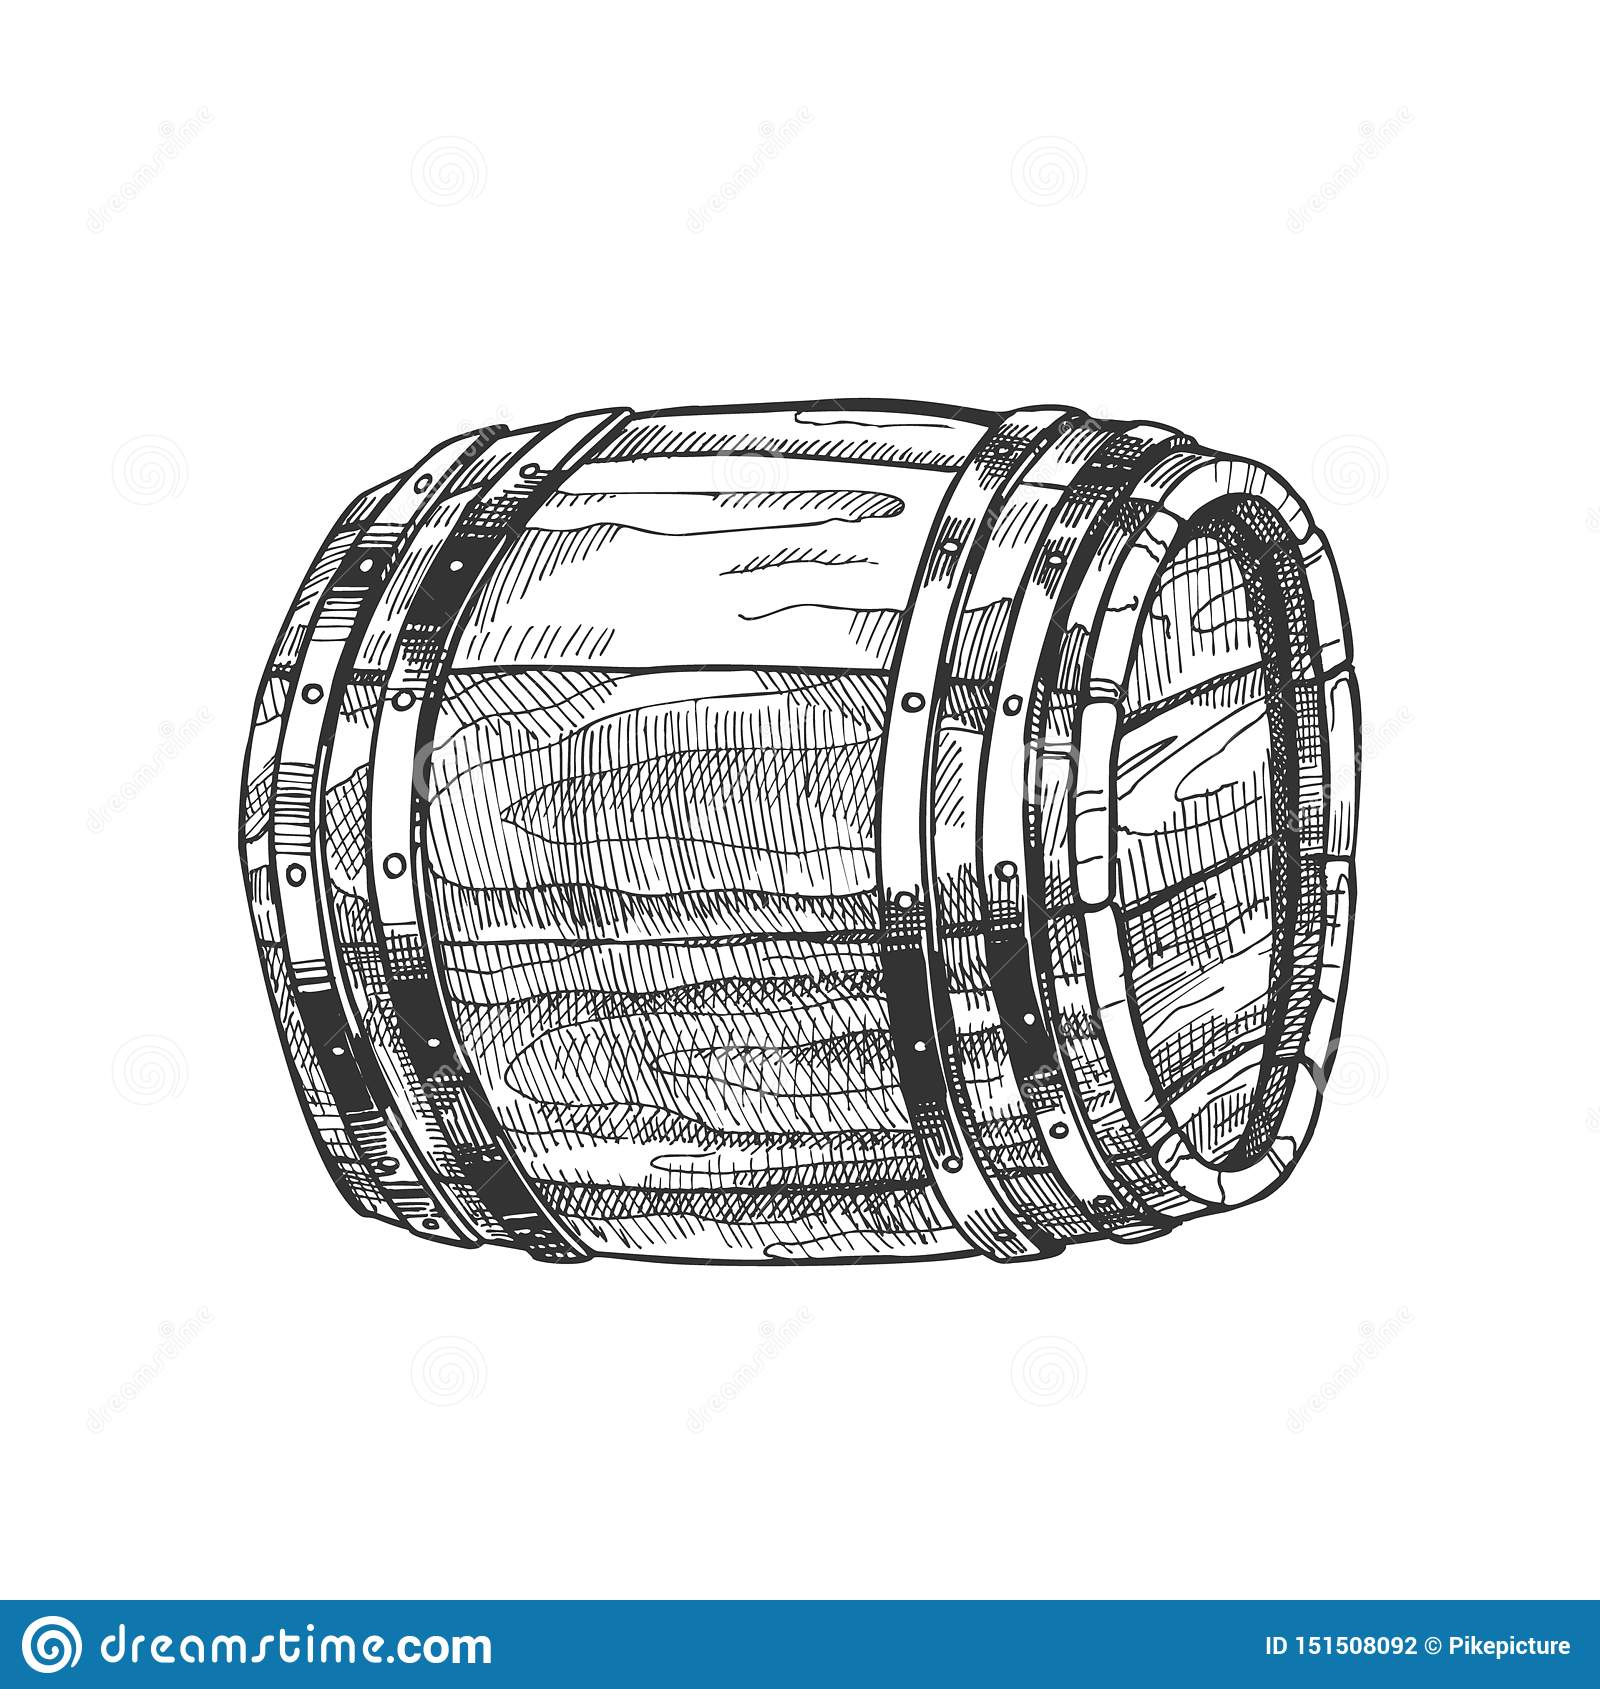 Drawn Lying Vintage Wooden Barrel Side View Vector